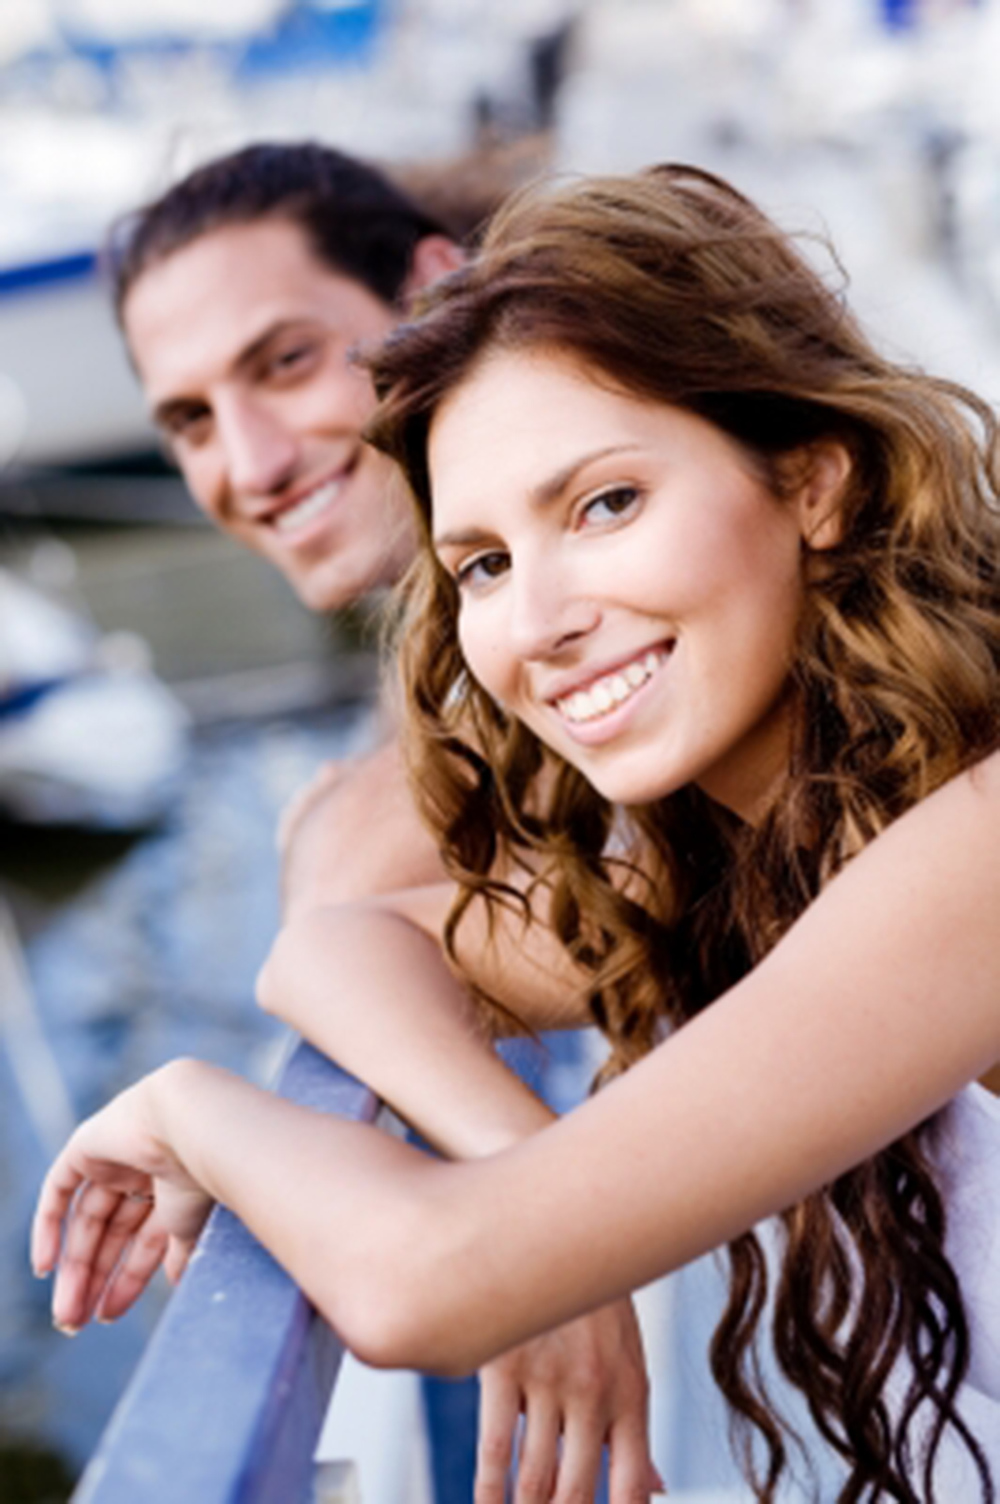 Tips to start hookup a friend